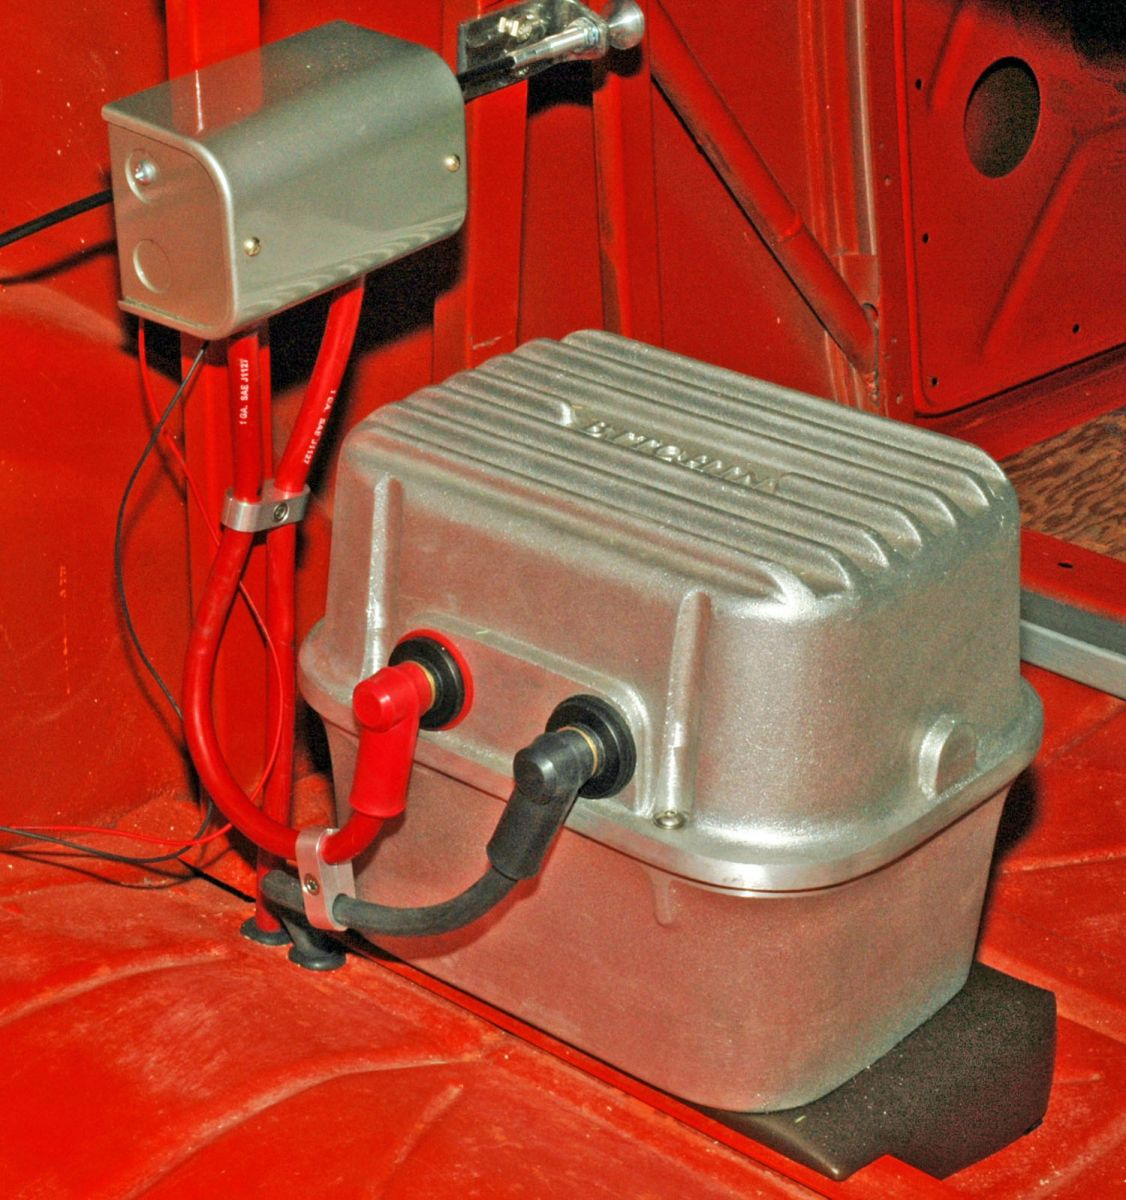 Grounding Electrical Systems Hotrod Hotline